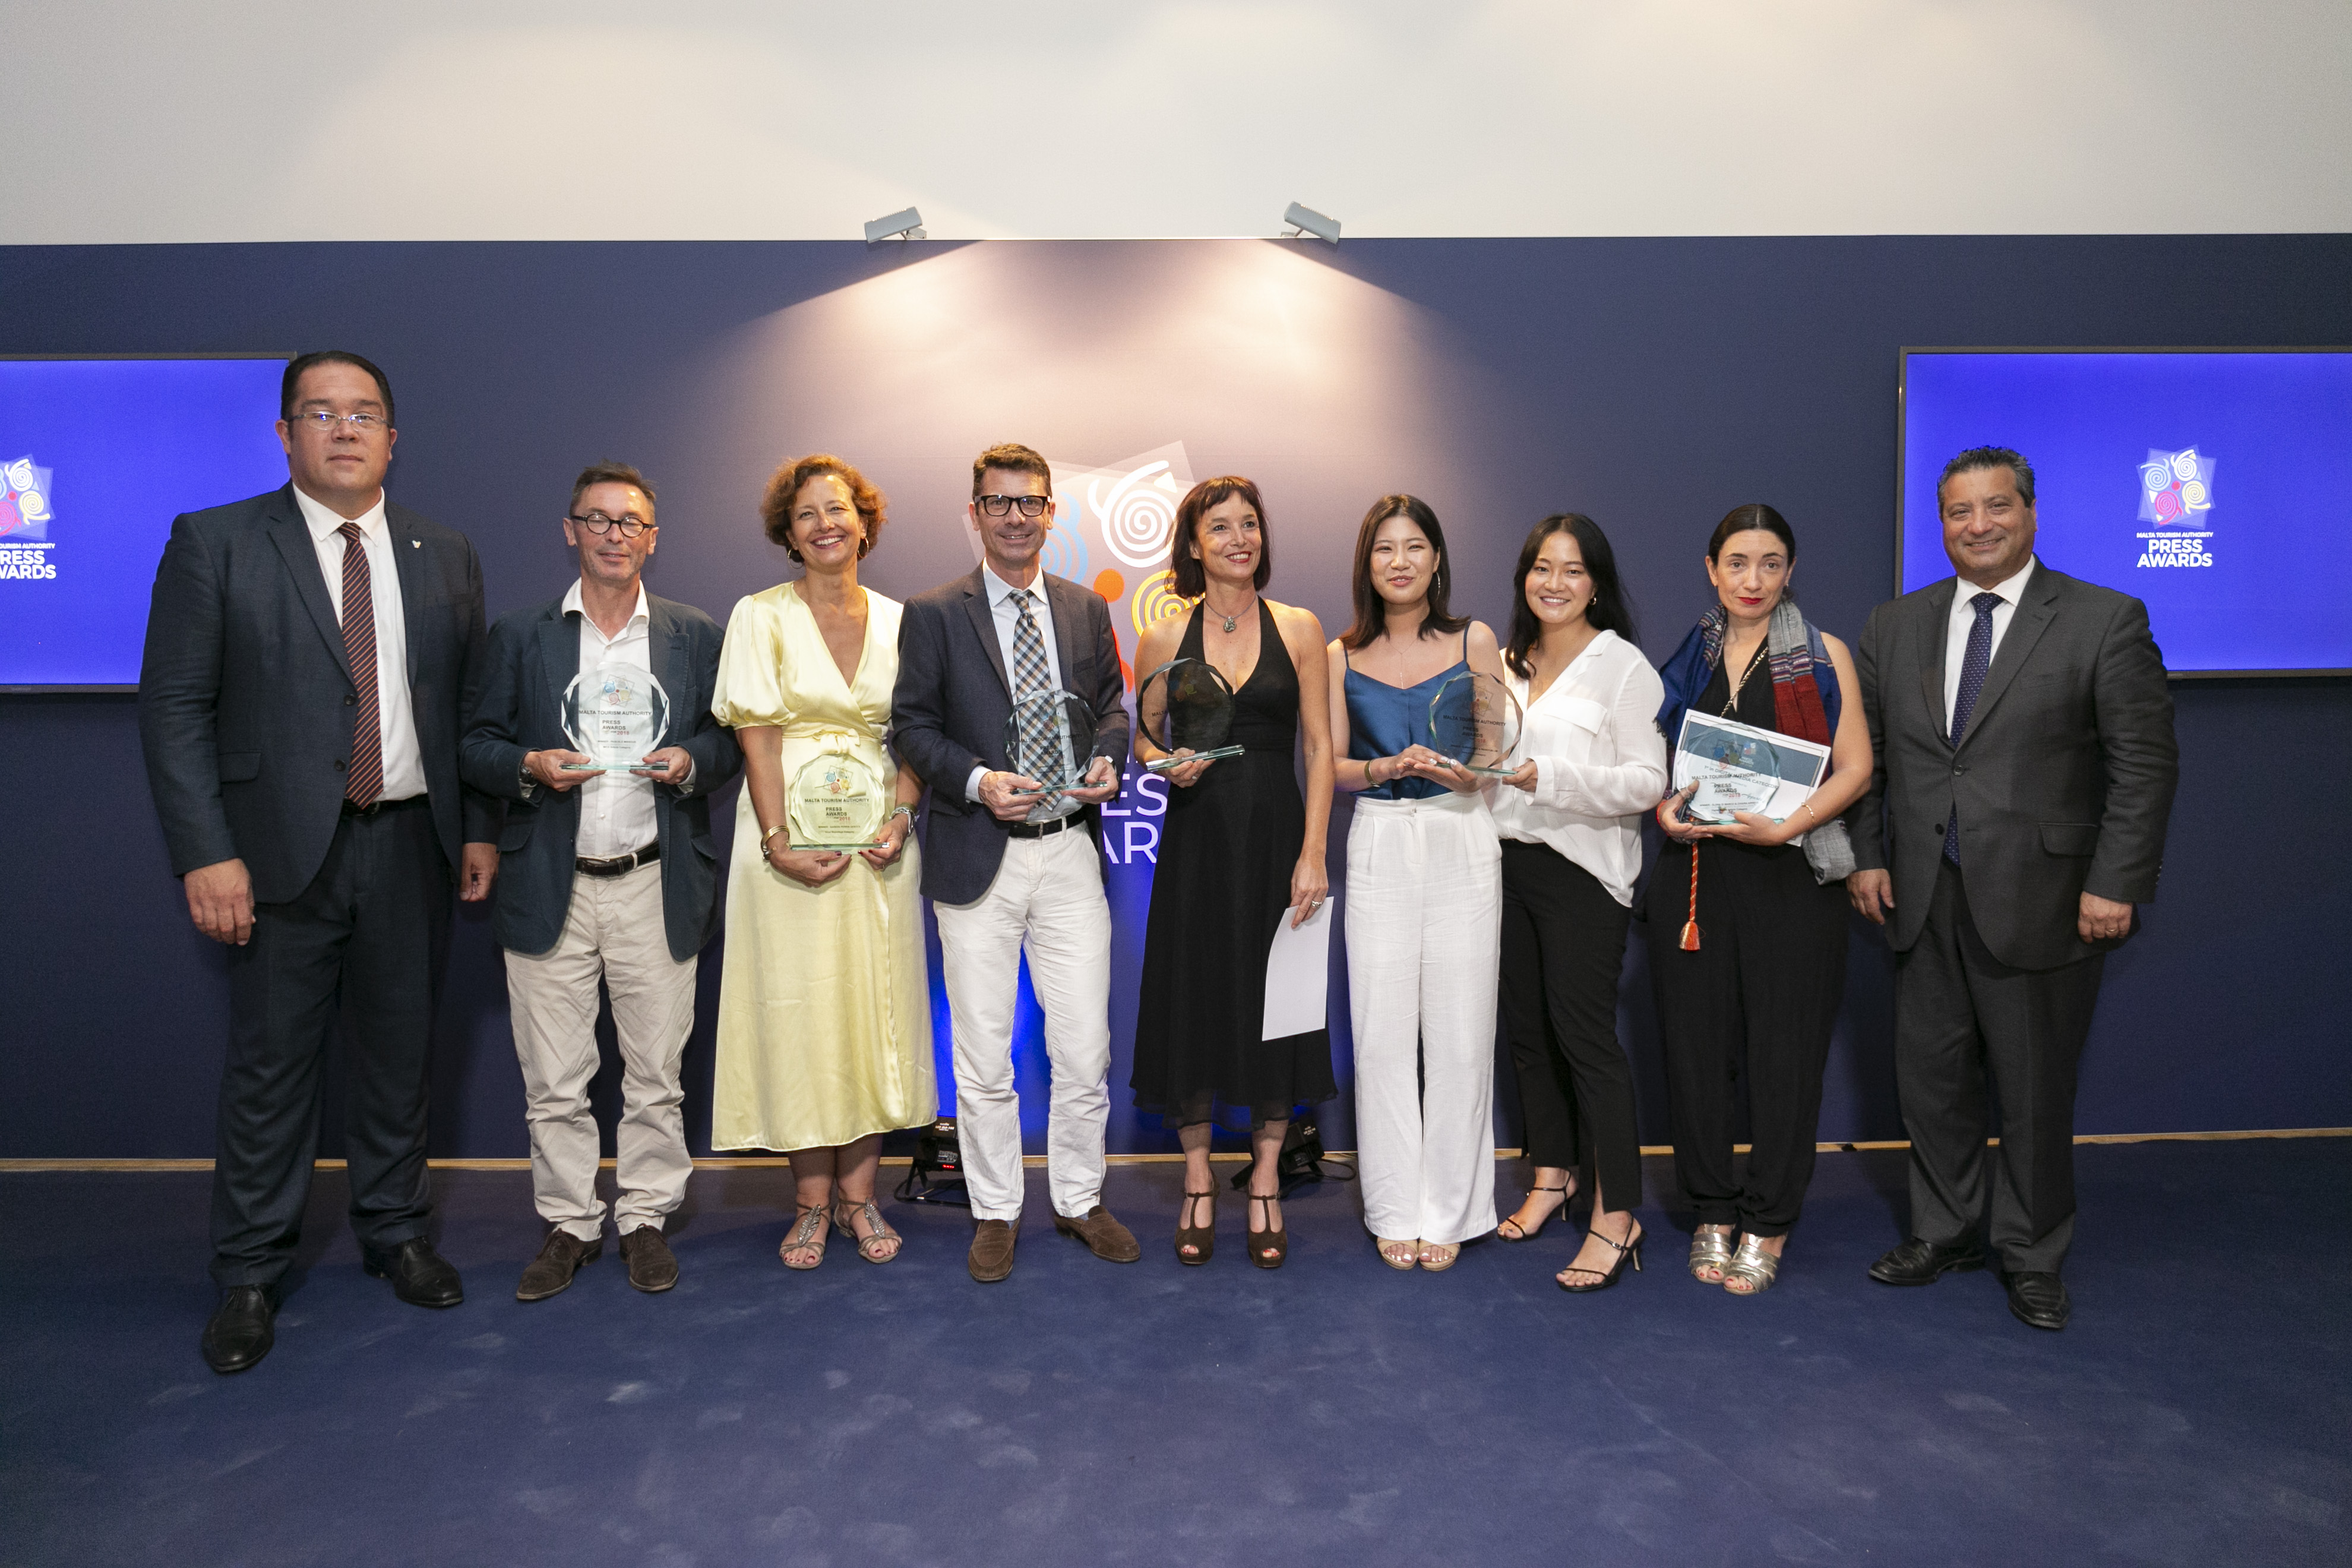 Press Awards Winners 2018